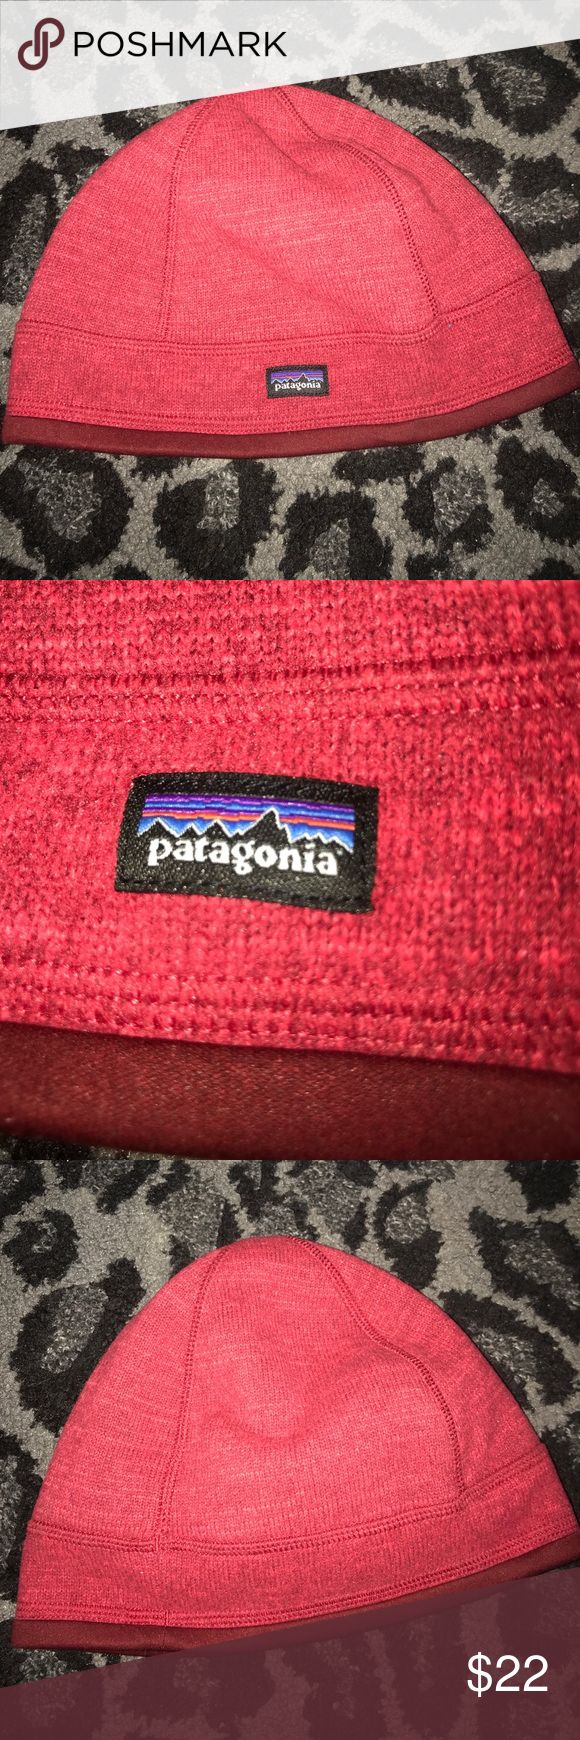 Patagonia beanie small Women's small. New without tags Patagonia Accessories Hats